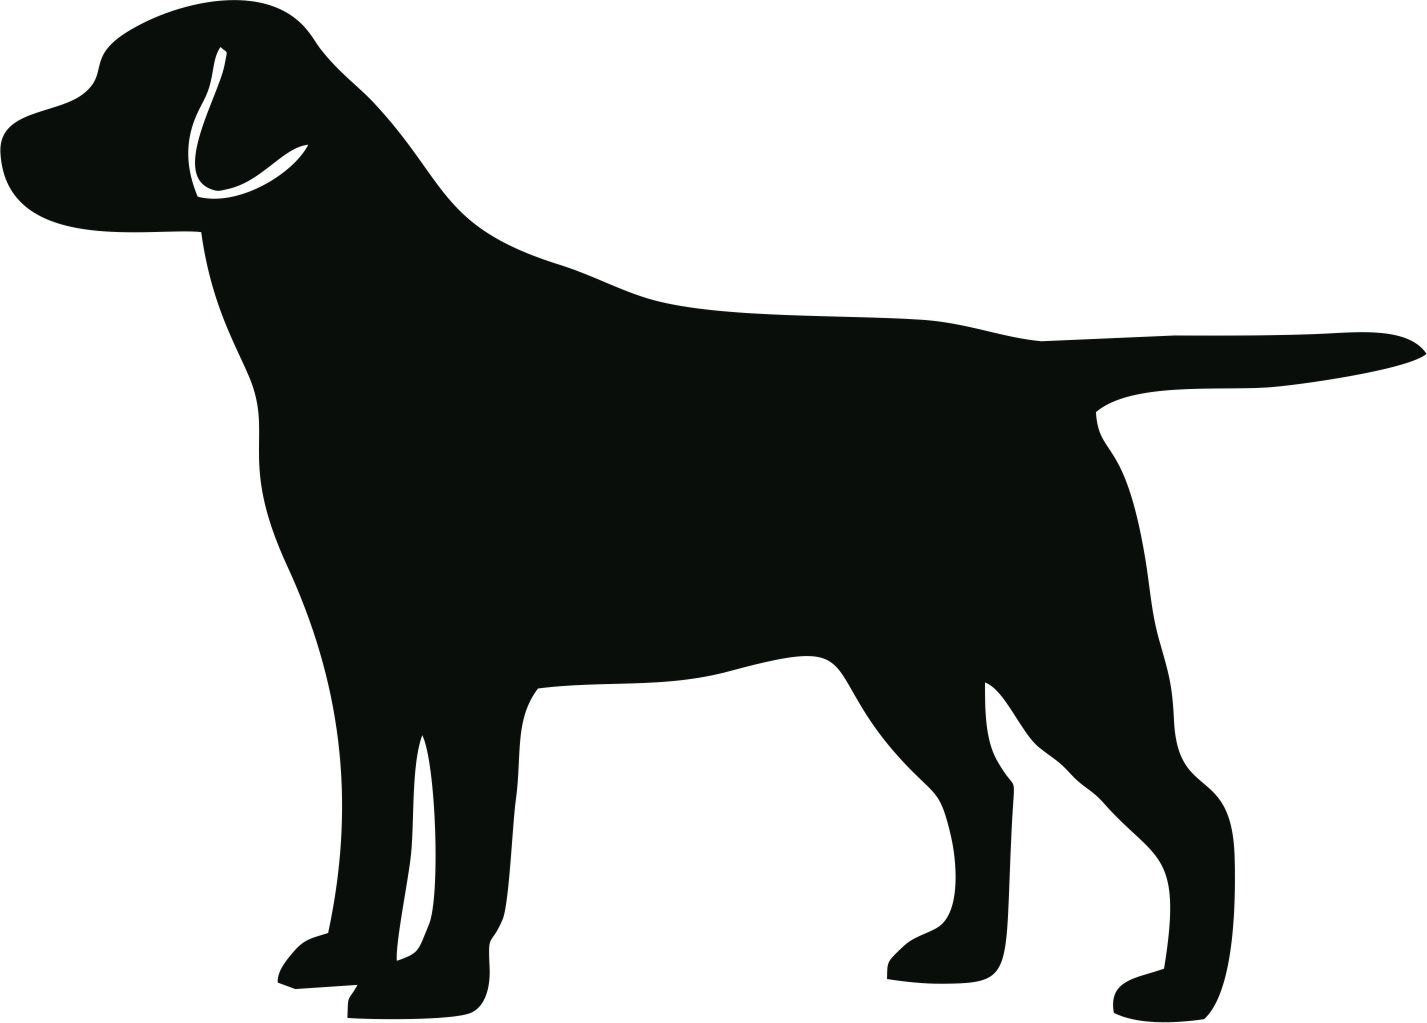 Dog silhouette clip art black and white graphic freeuse stock Dog silhouette clip art black and white - ClipartFest graphic freeuse stock